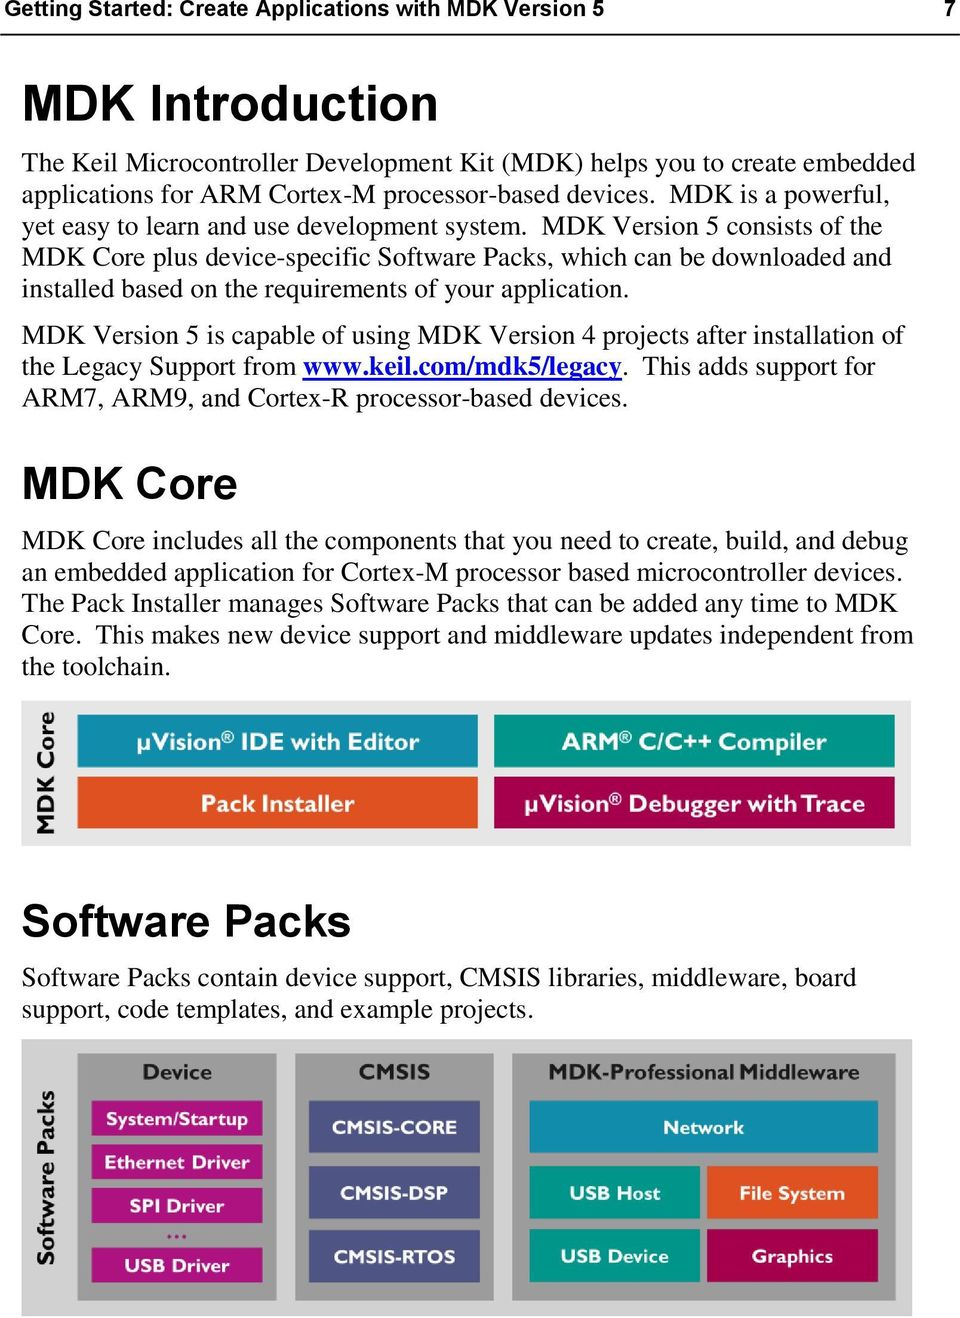 Getting Started  Create Applications with MDK Version 5 for ARM